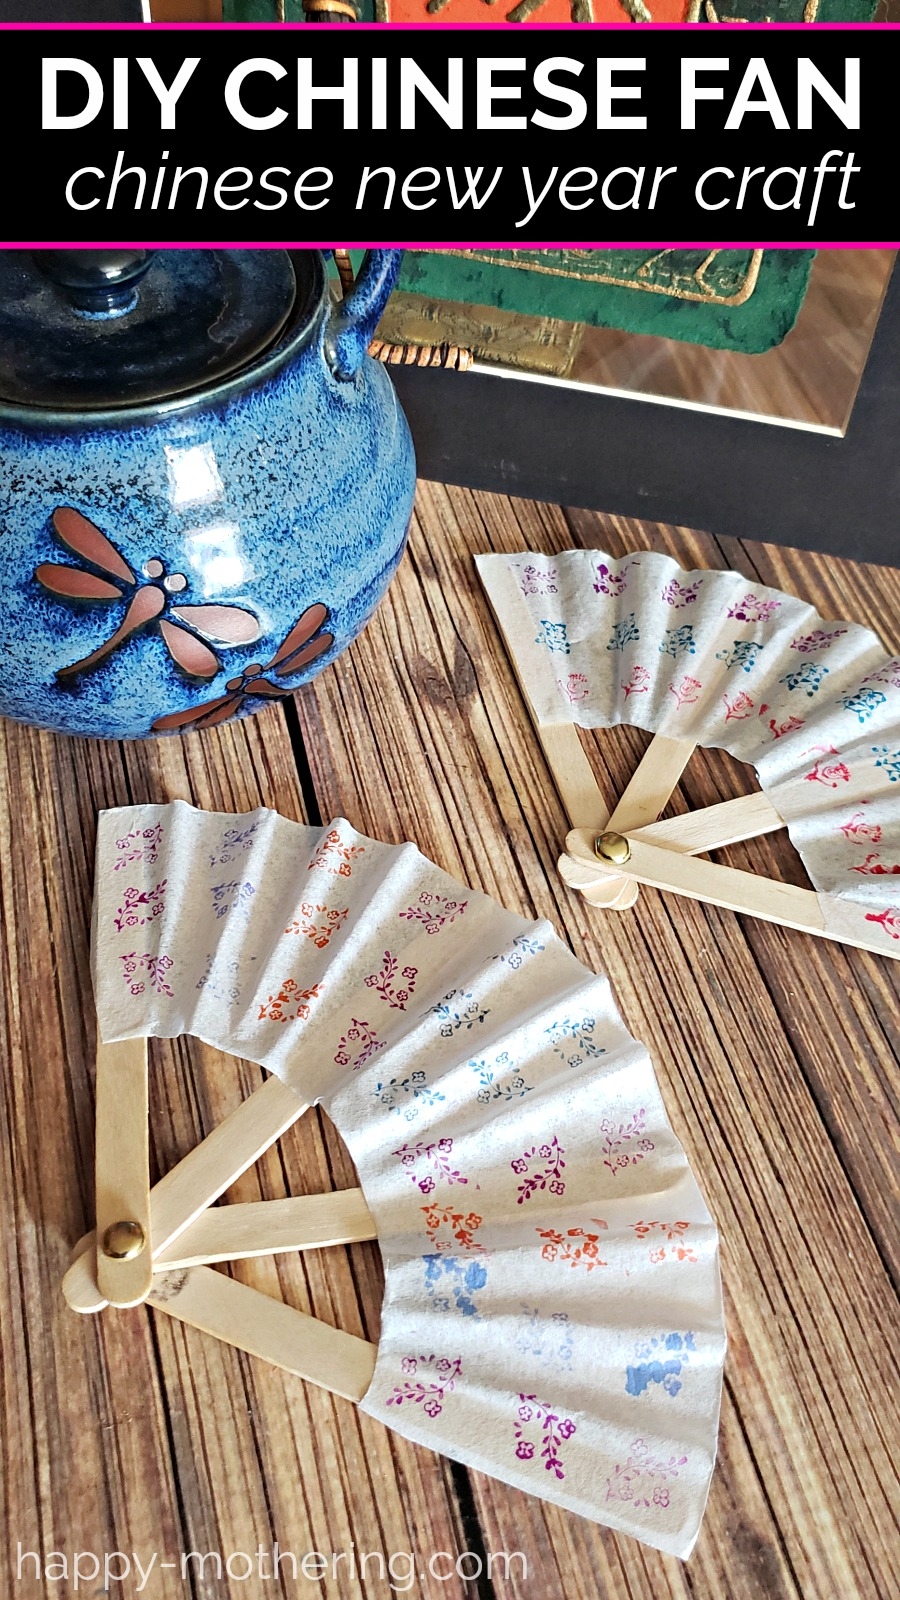 This DIY Chinese Fan craft is a fun family activity to celebrate Chinese New Year. Get the tutorial and see our food of choice to accompany the craft!